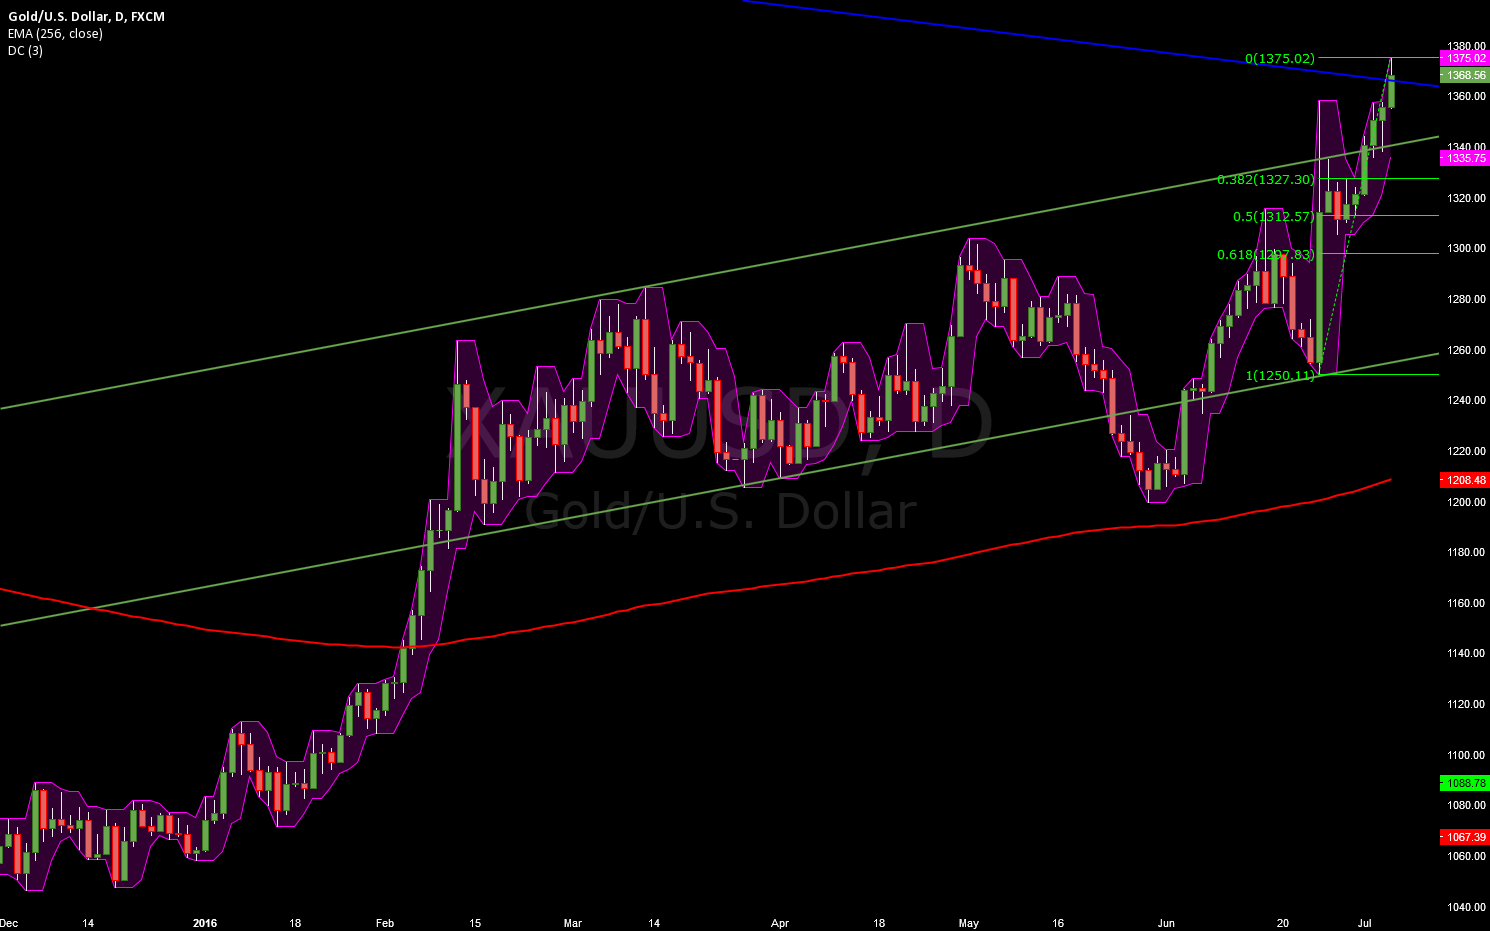 Monthly resistance